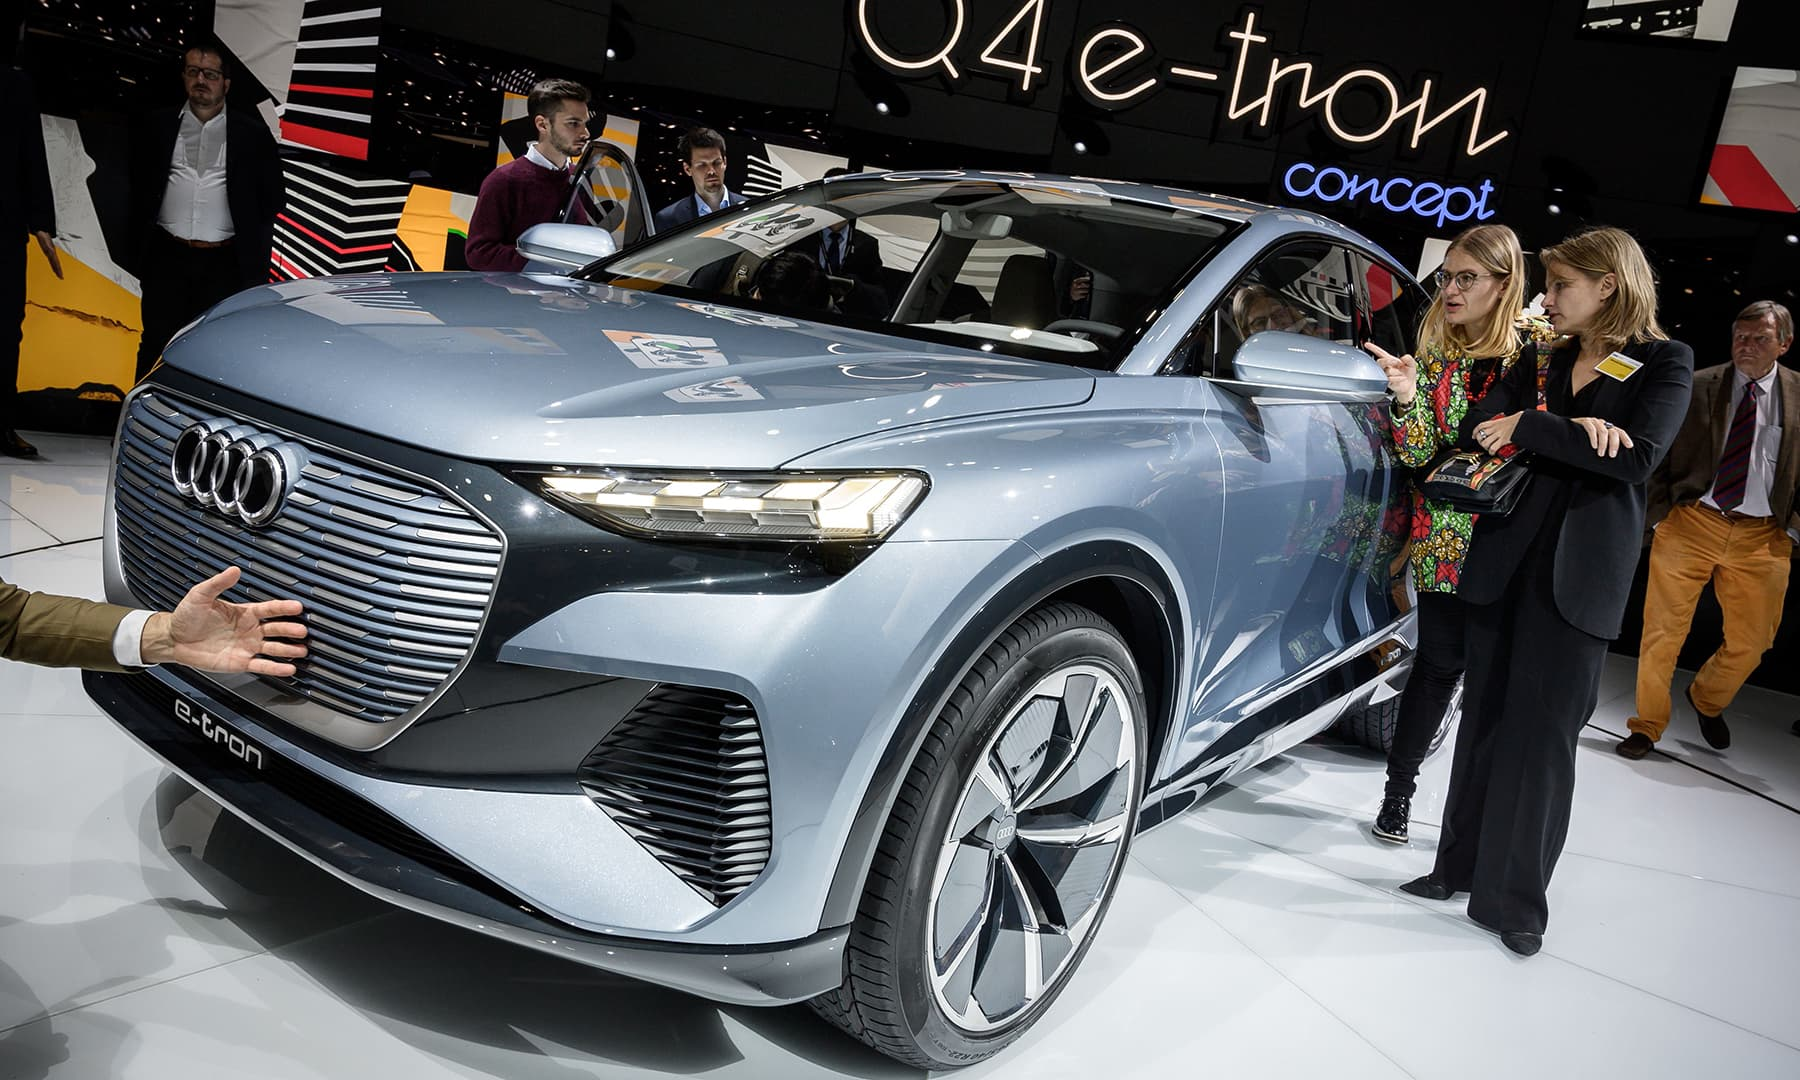 A new Audi Q4 e-tron model car is seen at the booth of the German carmaker during a press day ahead of the Geneva auto show. — AFP